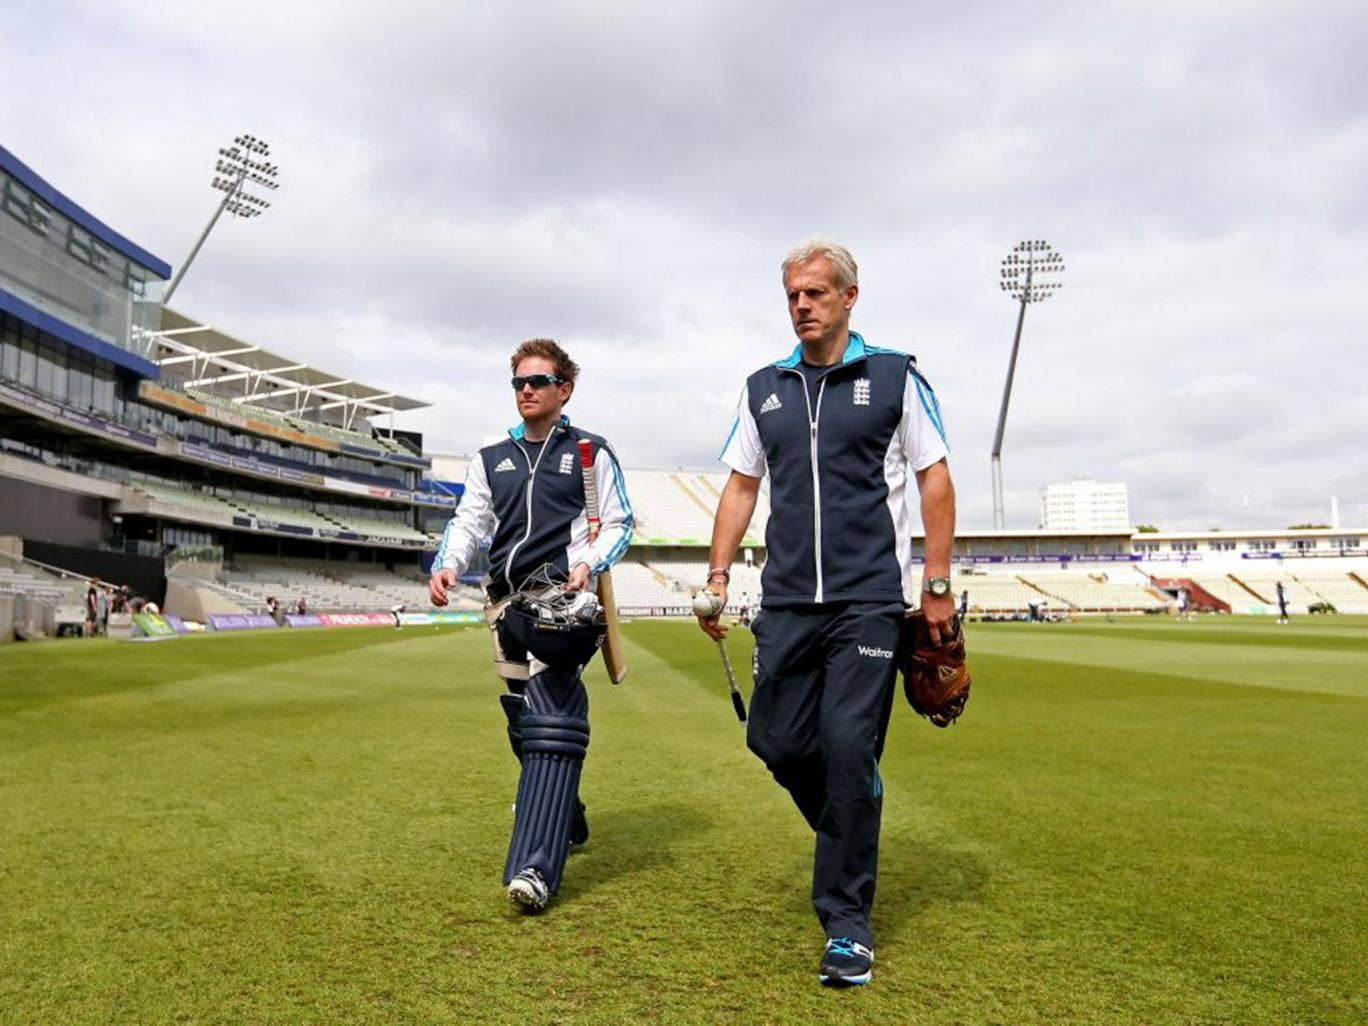 England coach Peter Moores (right) and Eoin Morgan at Edgbaston yesterday before the final game of the one-day series, which stands at 2-2